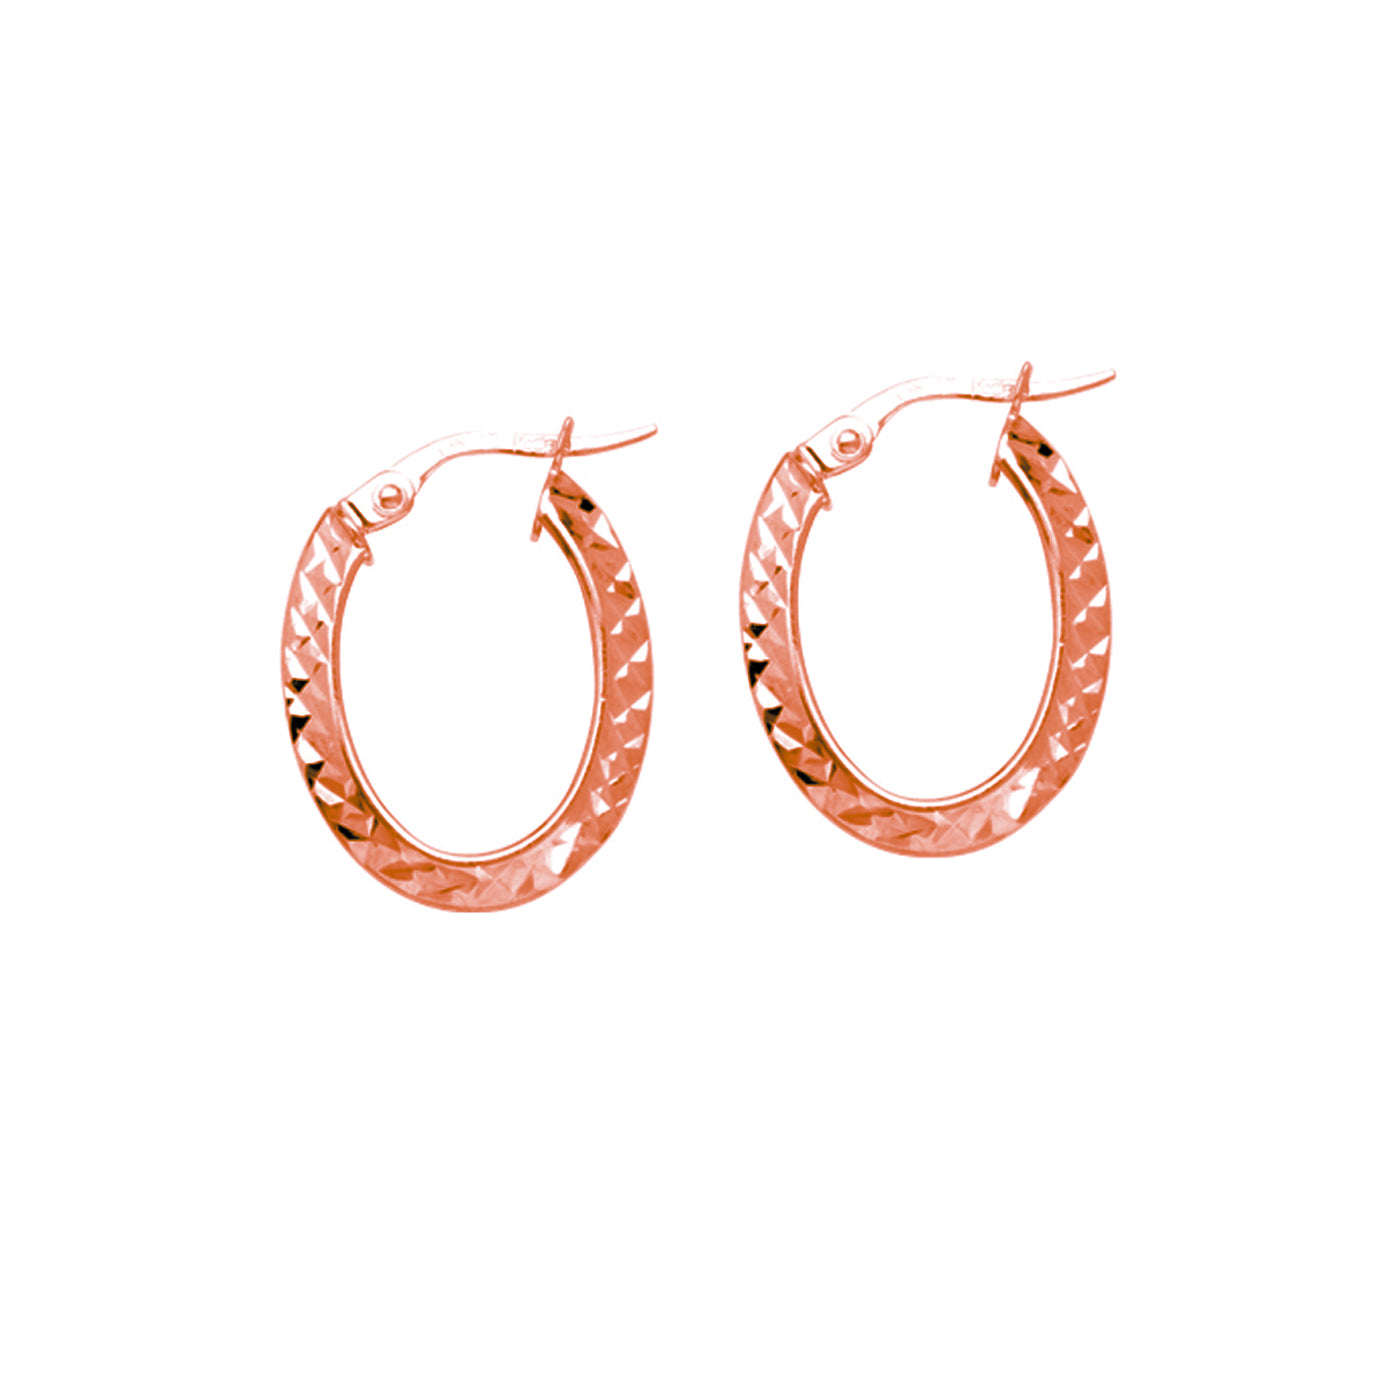 Oval Diamond Cut Hoop Earrings, 14K Rose Gold